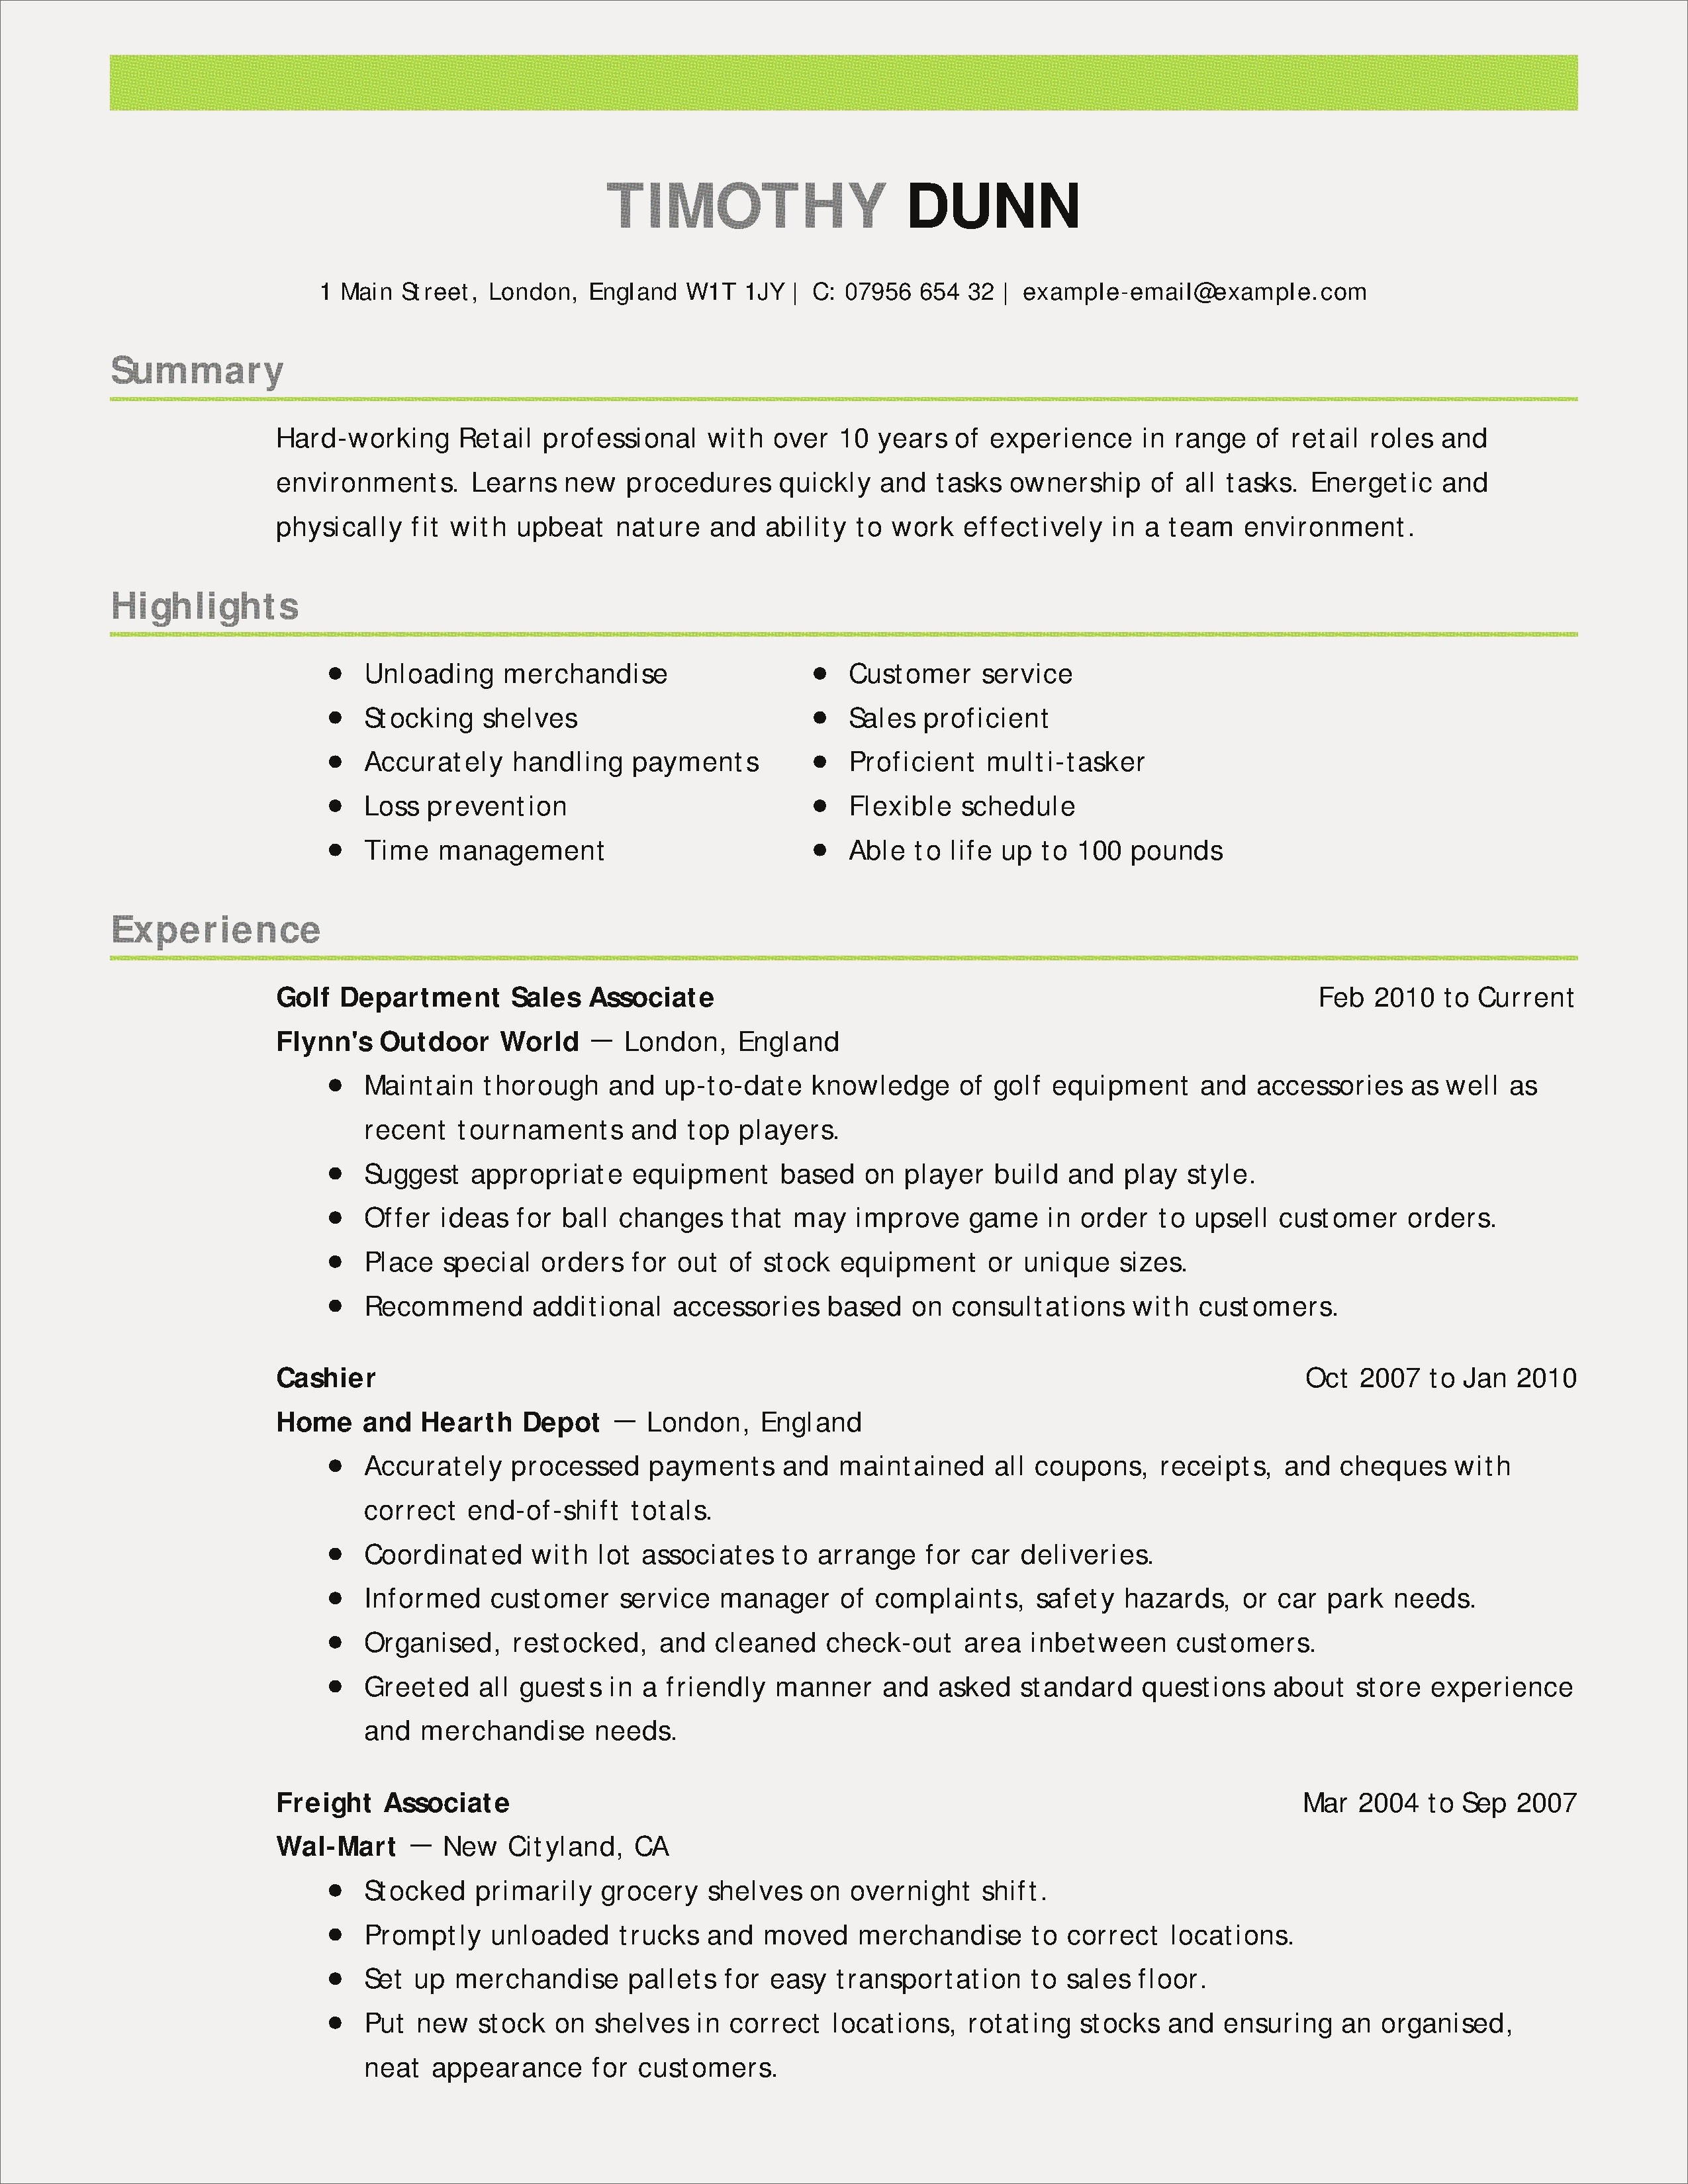 Fast Food Resume - How to Write A Resume Experience New Restaurant Resume Sample Unique